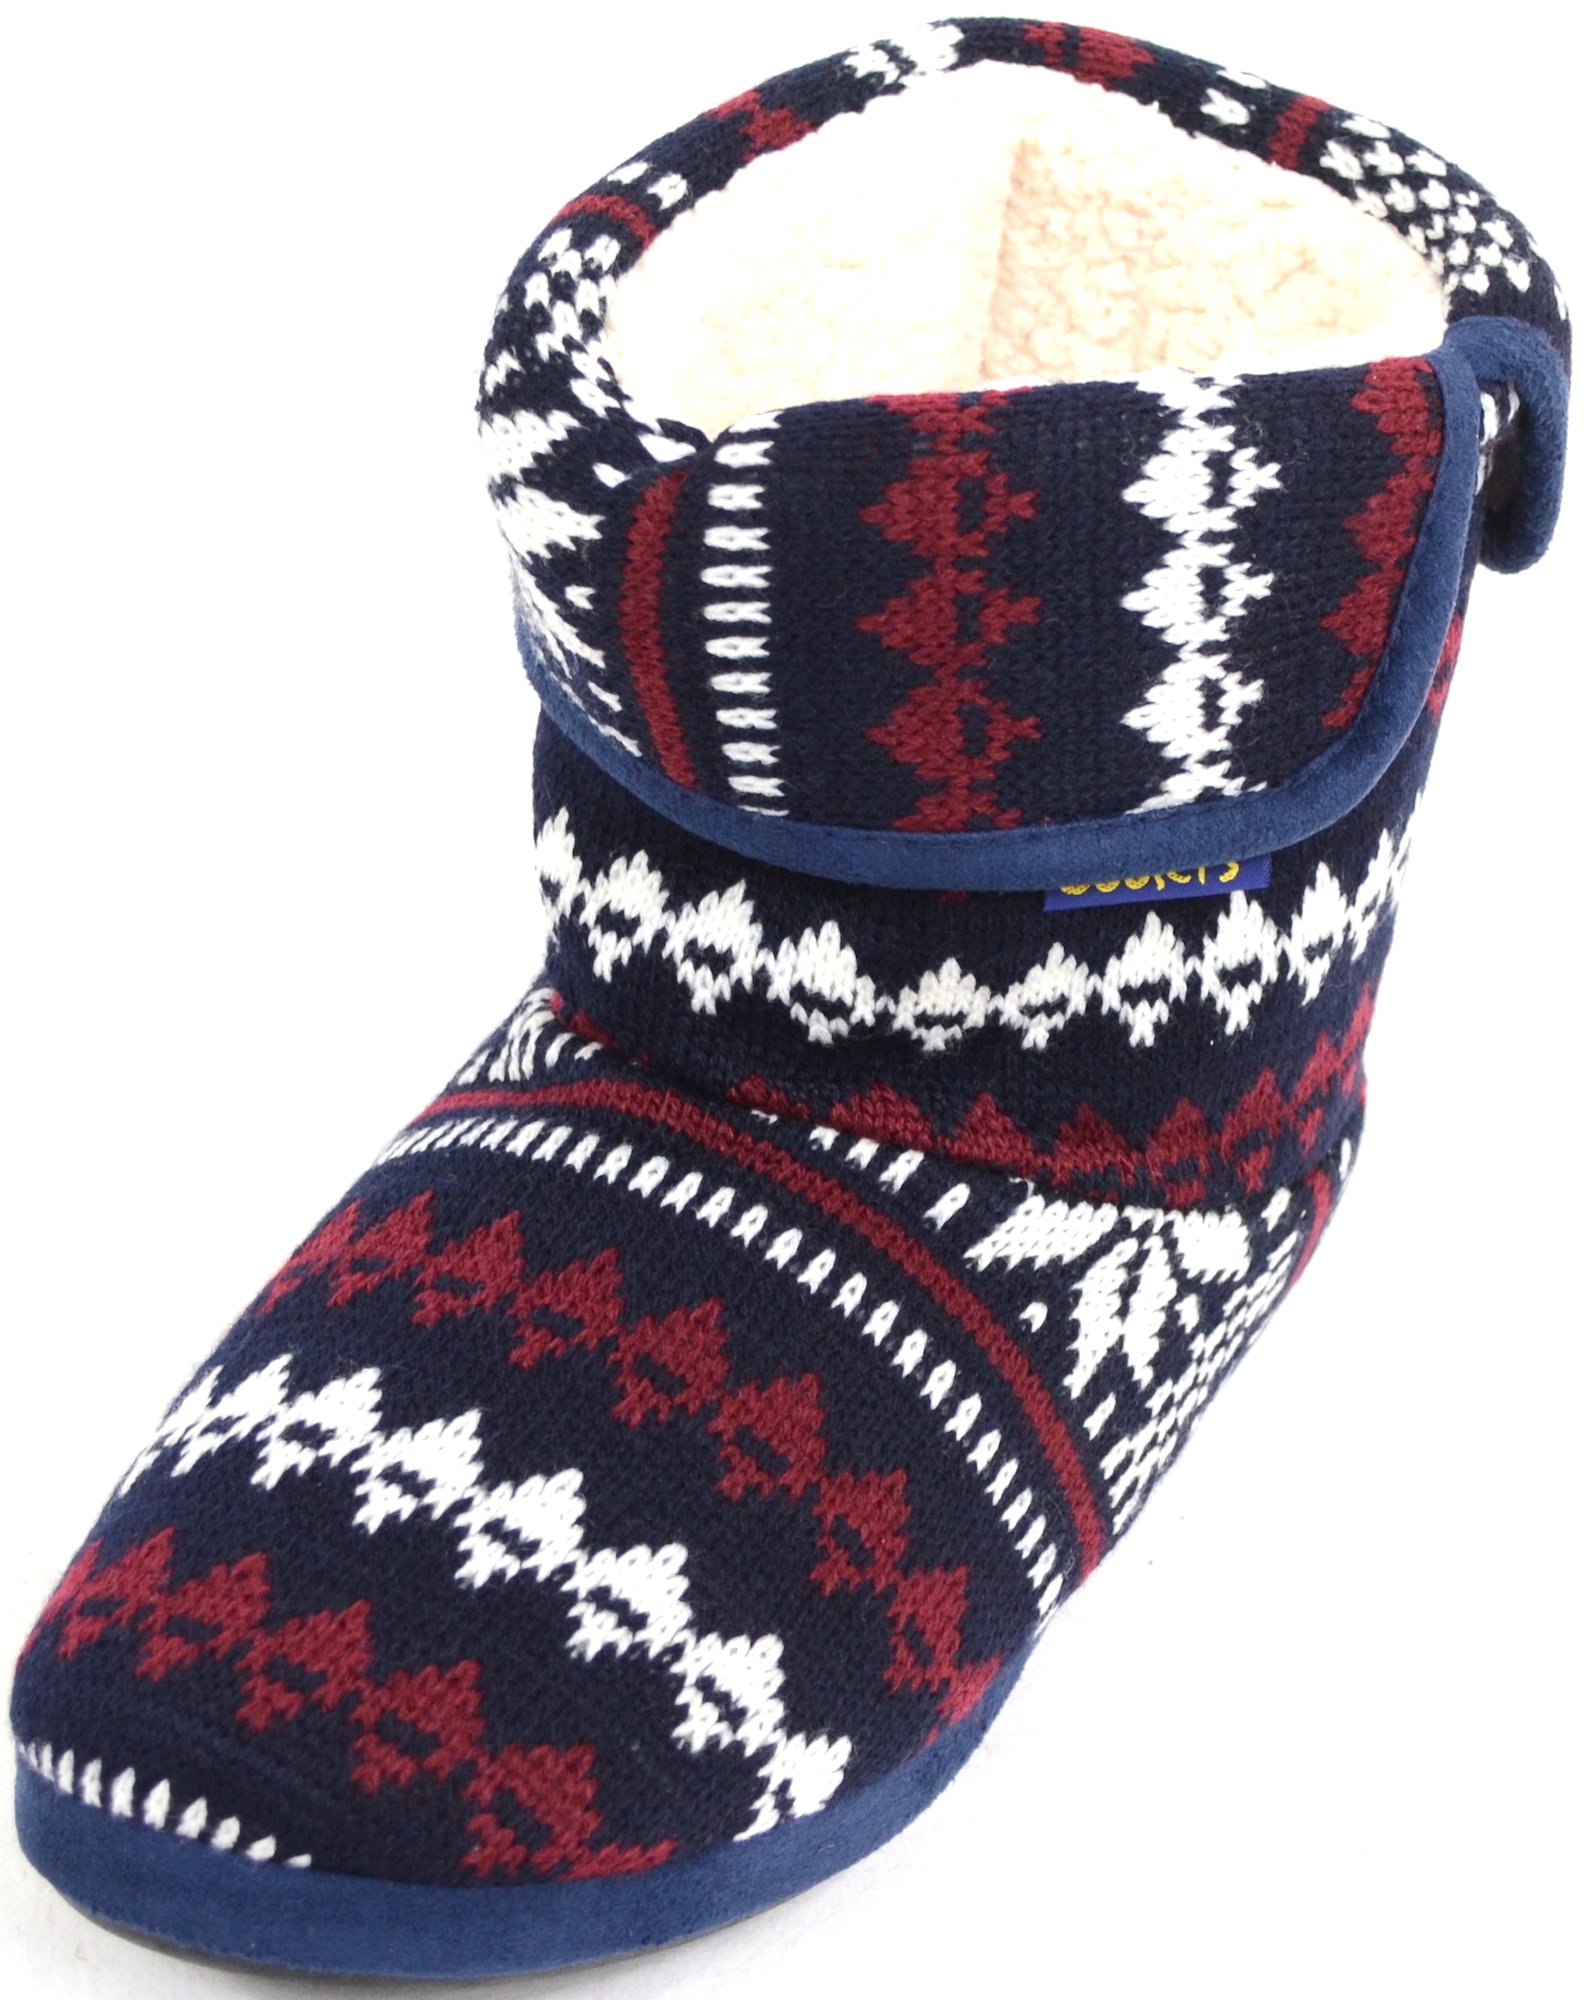 ABSOLUTE FOOTWEAR Mens Knitted Style Warm Fleece Lined Slipper Boots/Booties - Navy - 12 US